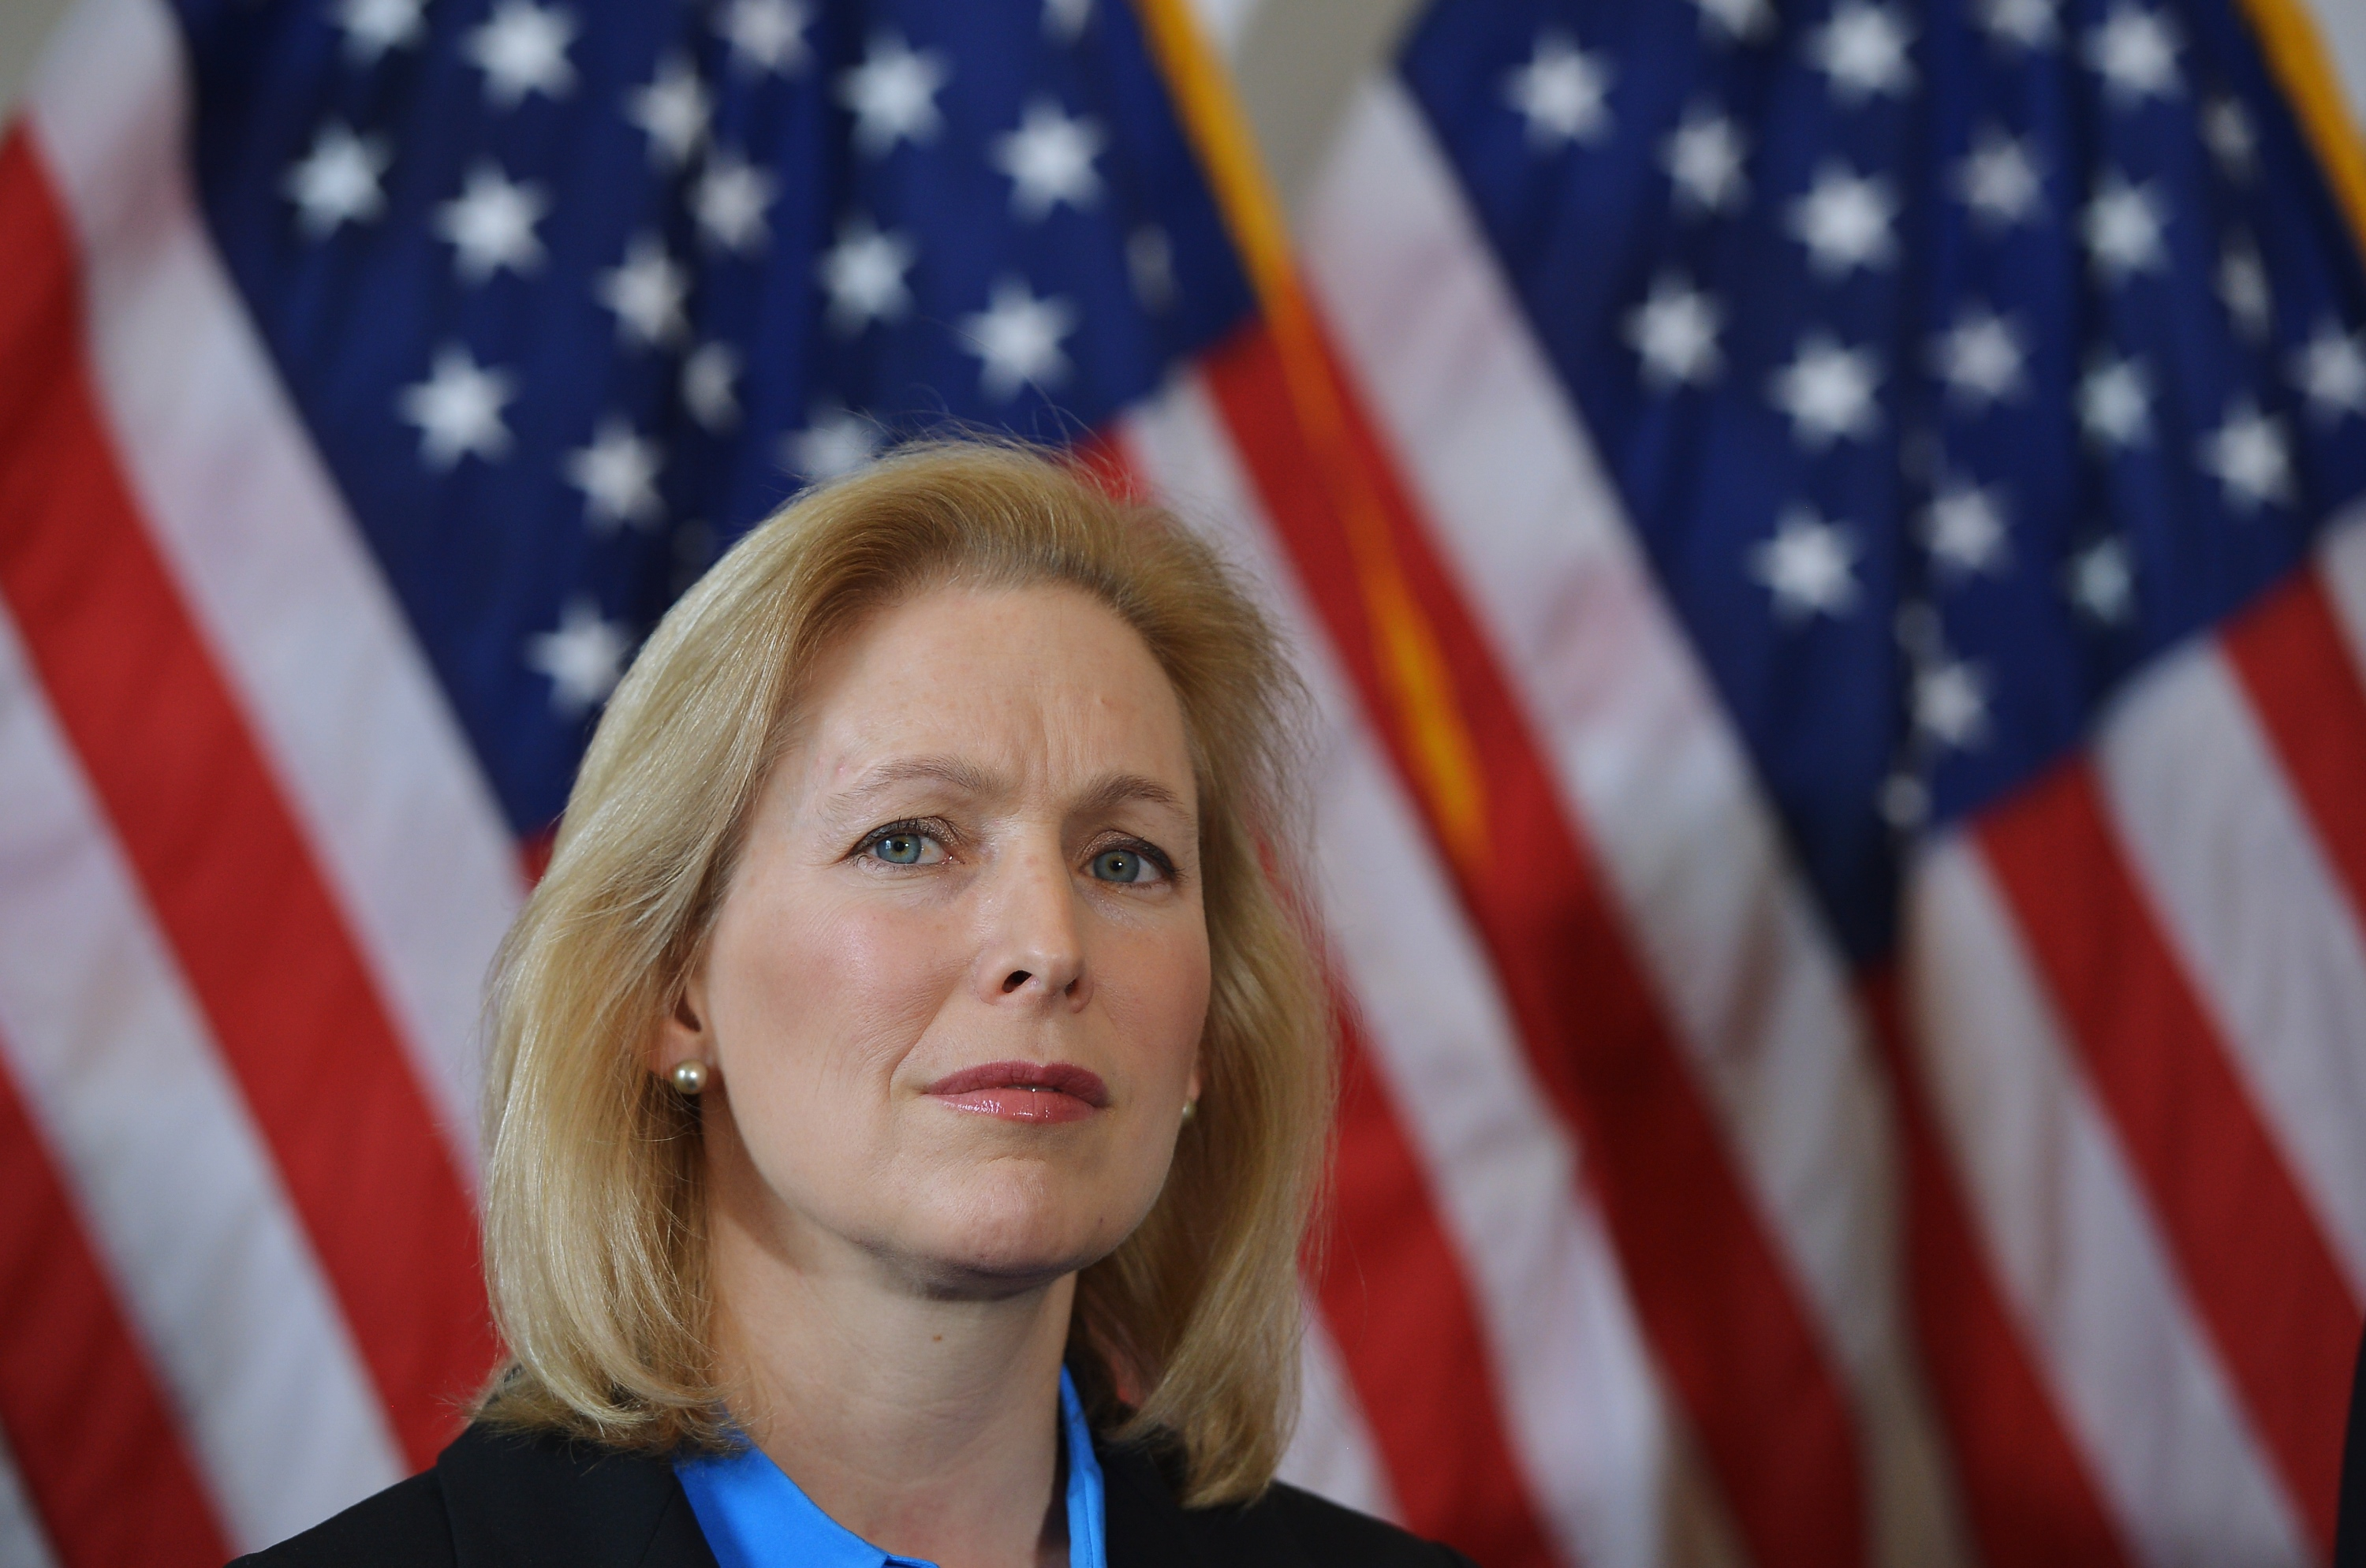 Senator Kirsten Gillibrand, D-NY attends a press conference calling for the creation of an independent military justice system to deal with sexual harassment and assault in the military, in the Russell Senate Office Building on Capitol Hill in Washington, DC on Feb. 6, 2014.